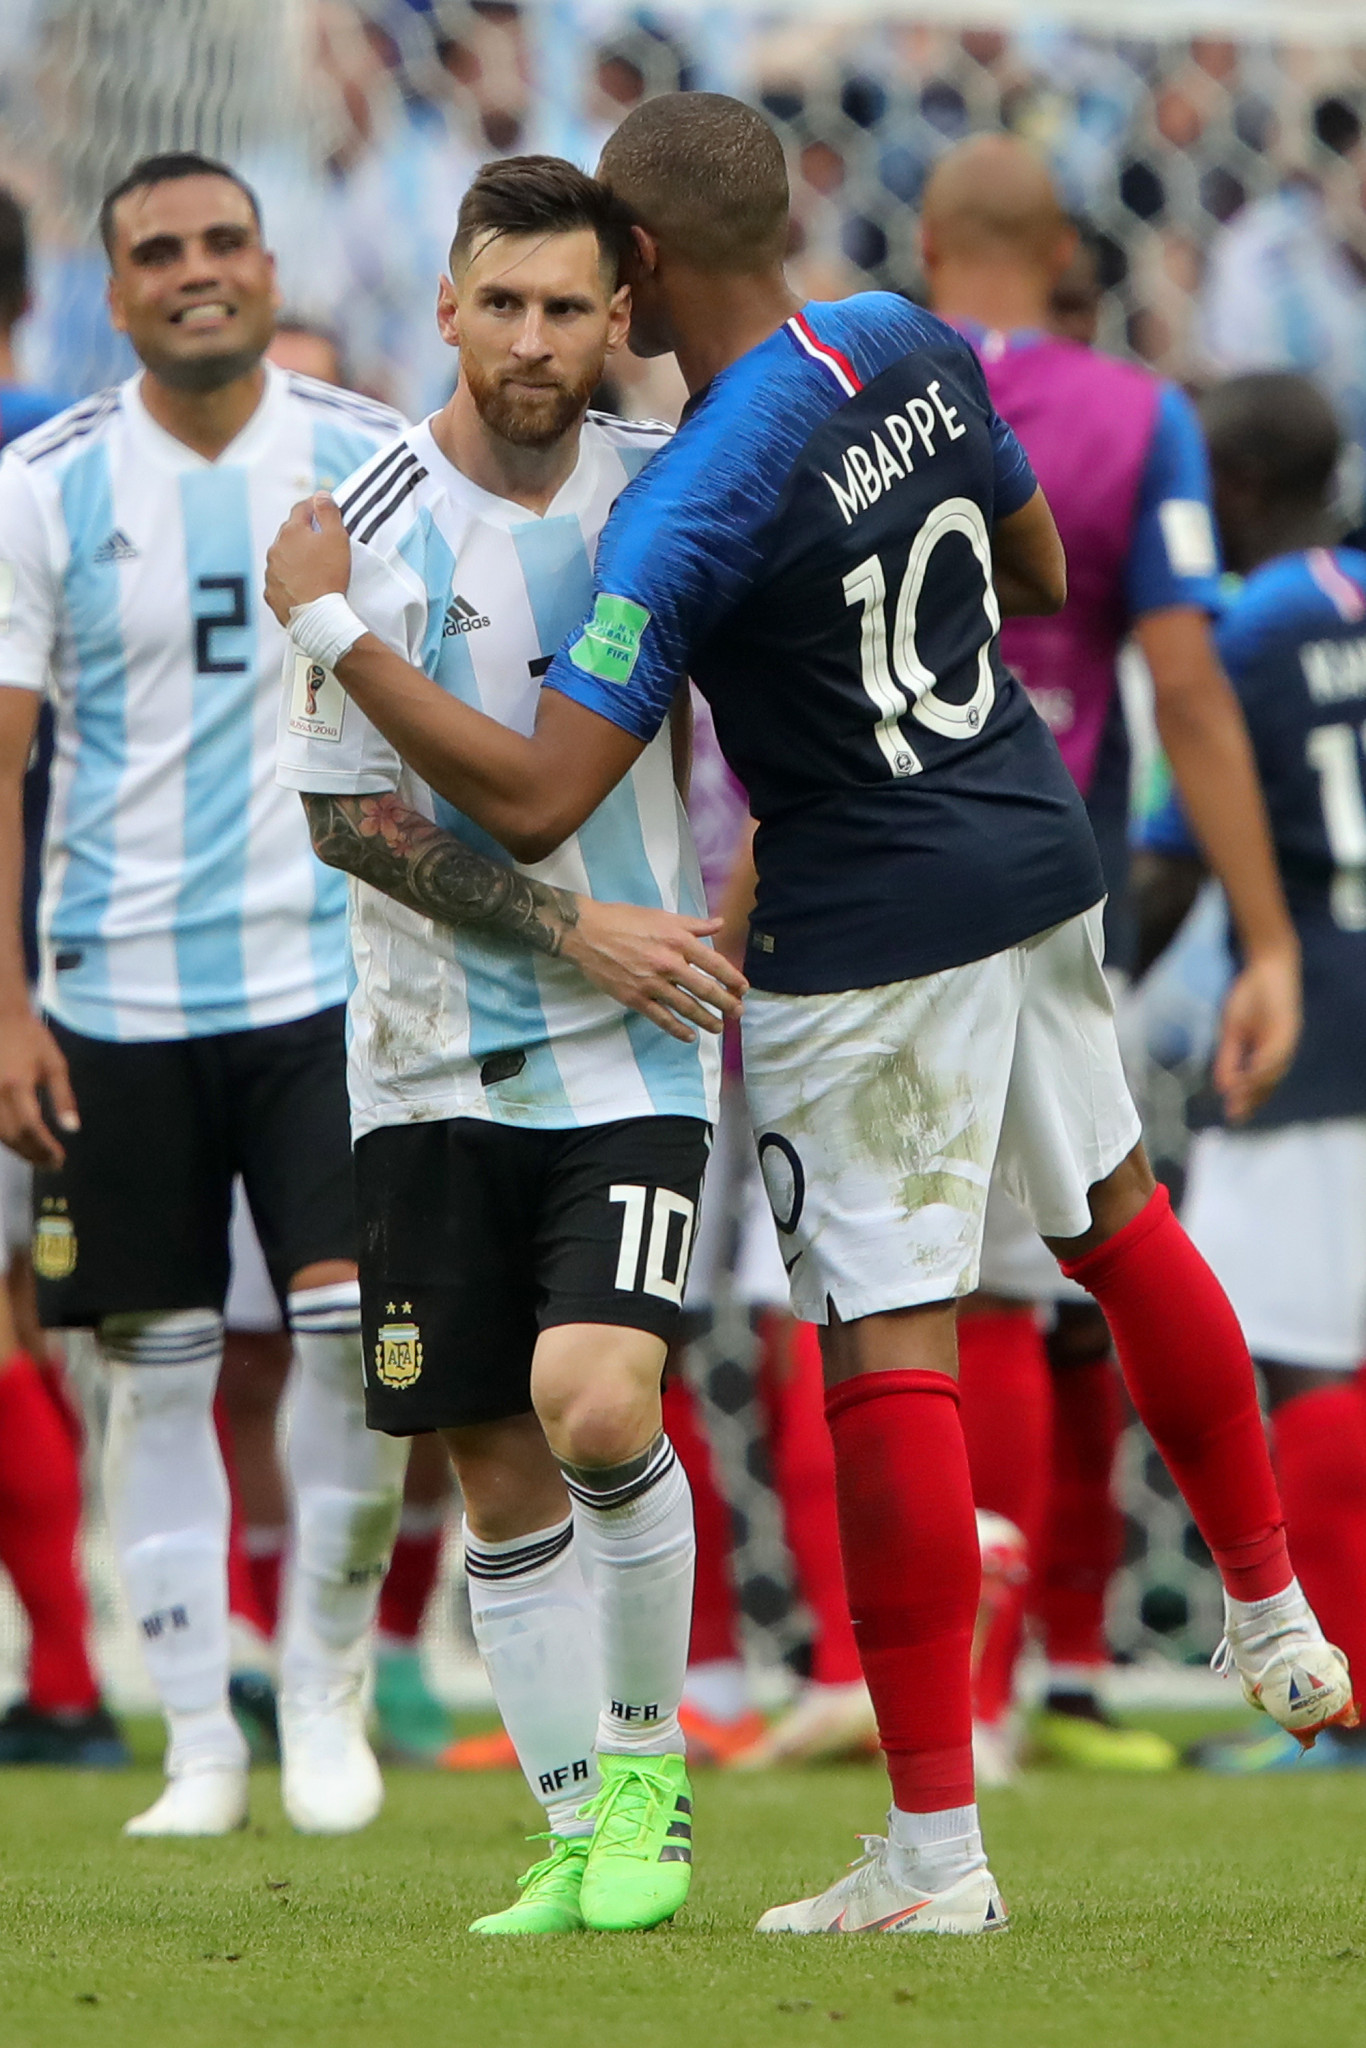 Lionel Messi, left, is commiserated by Kylian Mbappe after a possible changing of the guard ©Getty Images